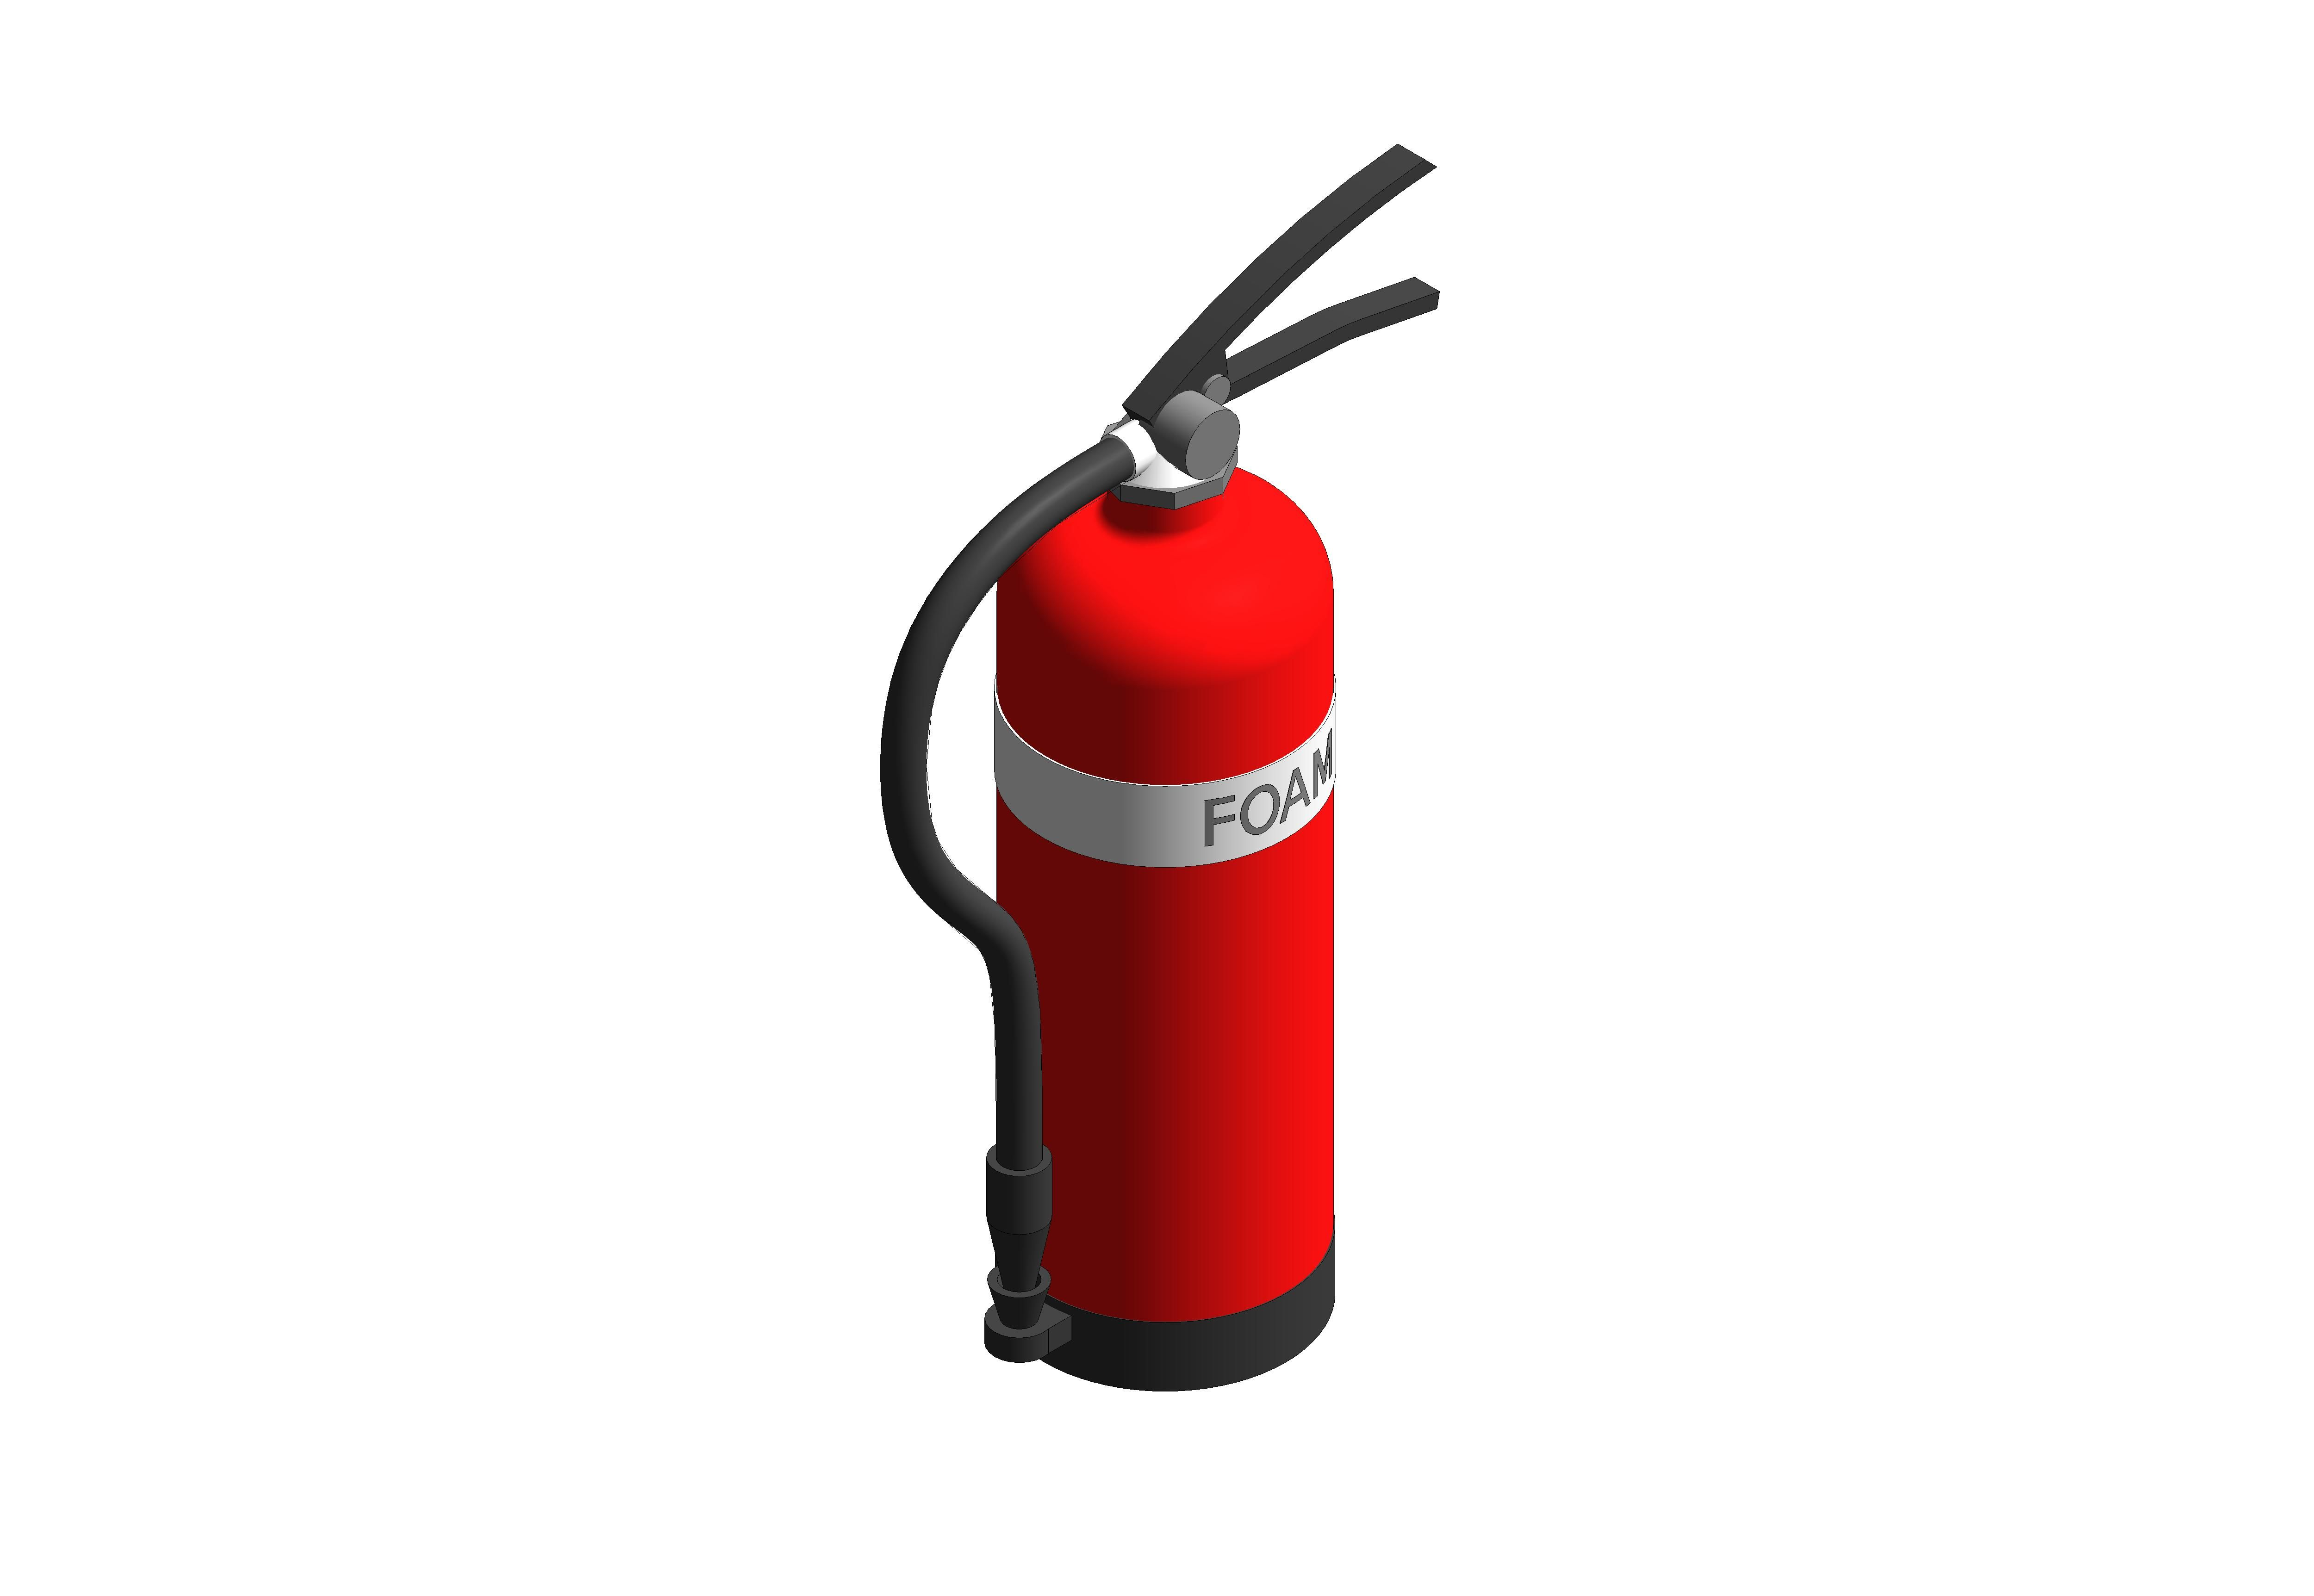 Image of Foam Fire Extinguisher